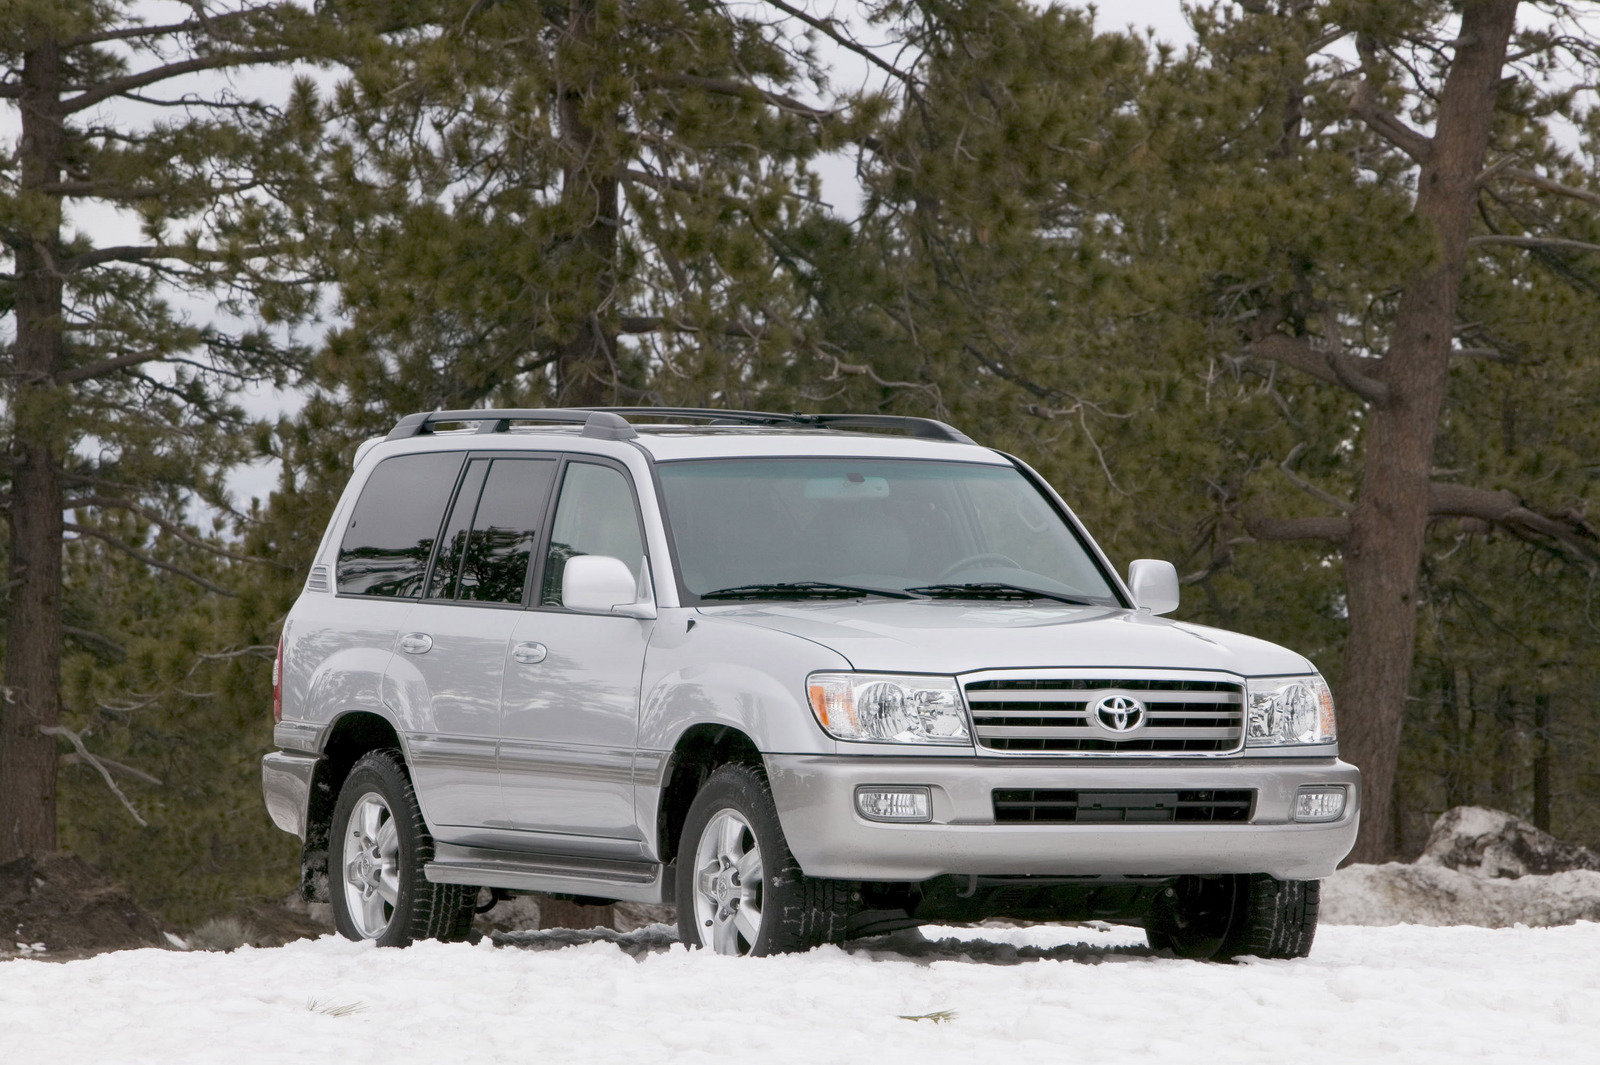 2006 toyota land cruiser picture 94388 car review. Black Bedroom Furniture Sets. Home Design Ideas